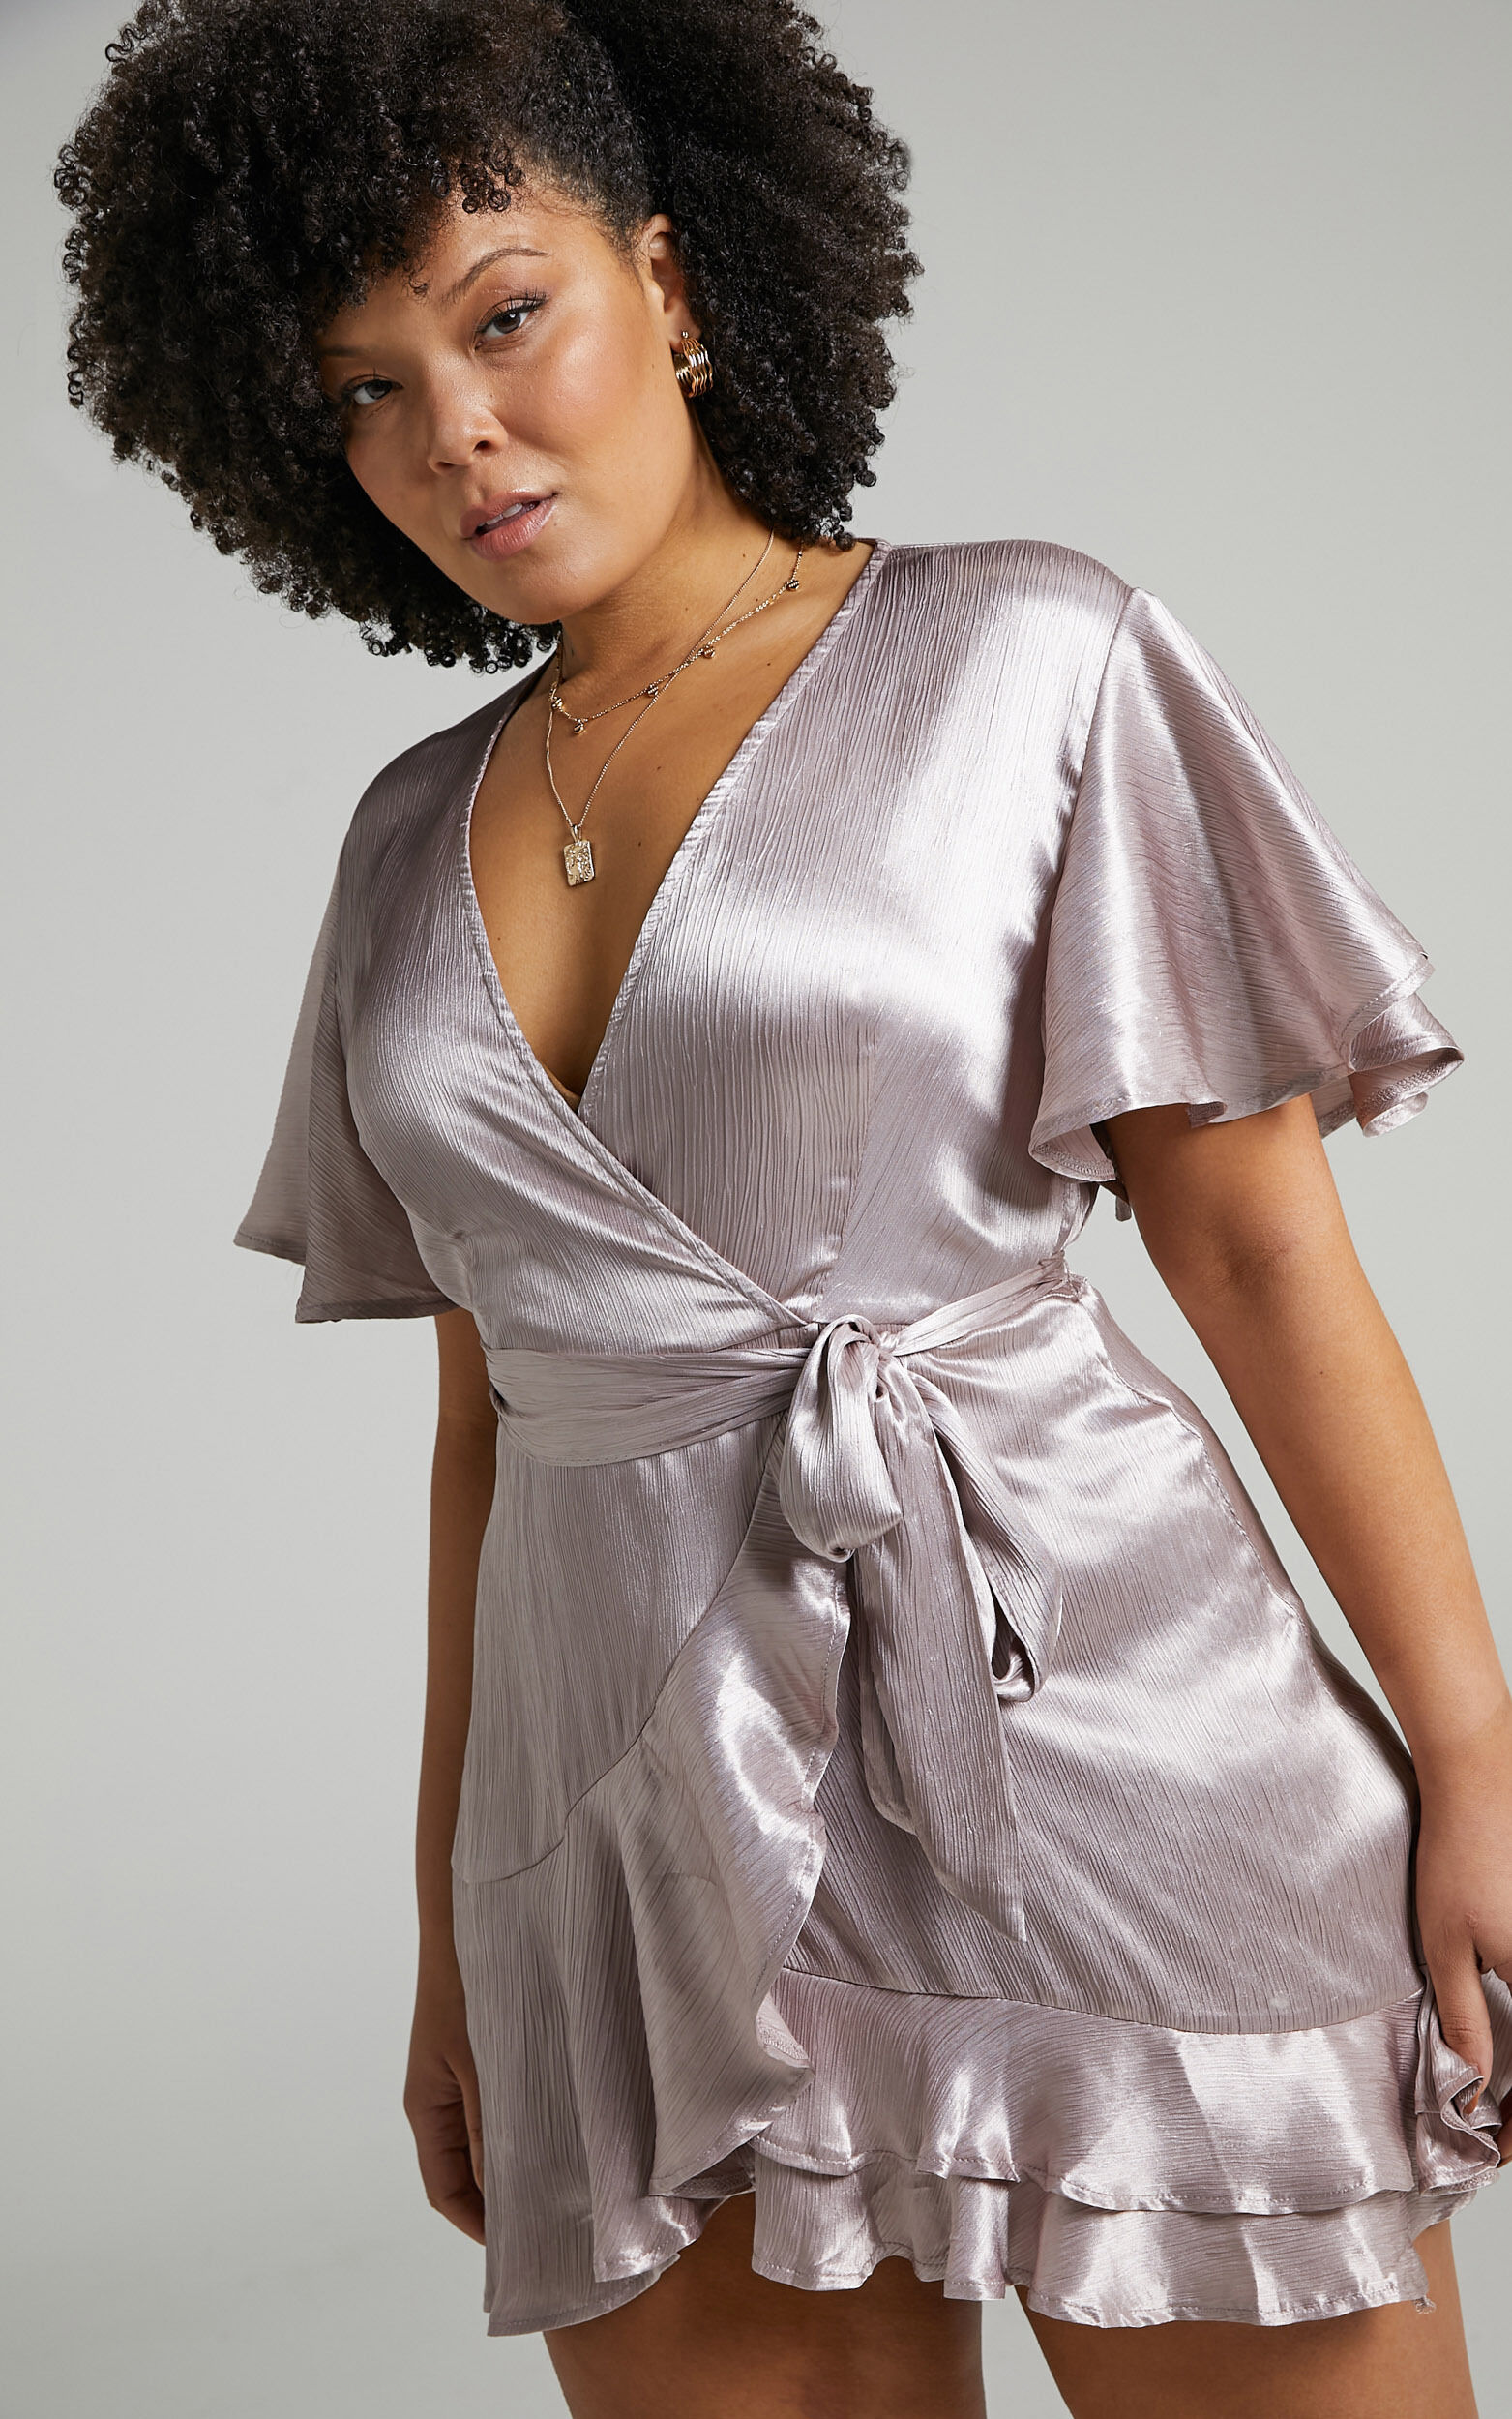 All I Want To Be Ruffle Mini Dress in Silver Satin - 04, SLV4, super-hi-res image number null